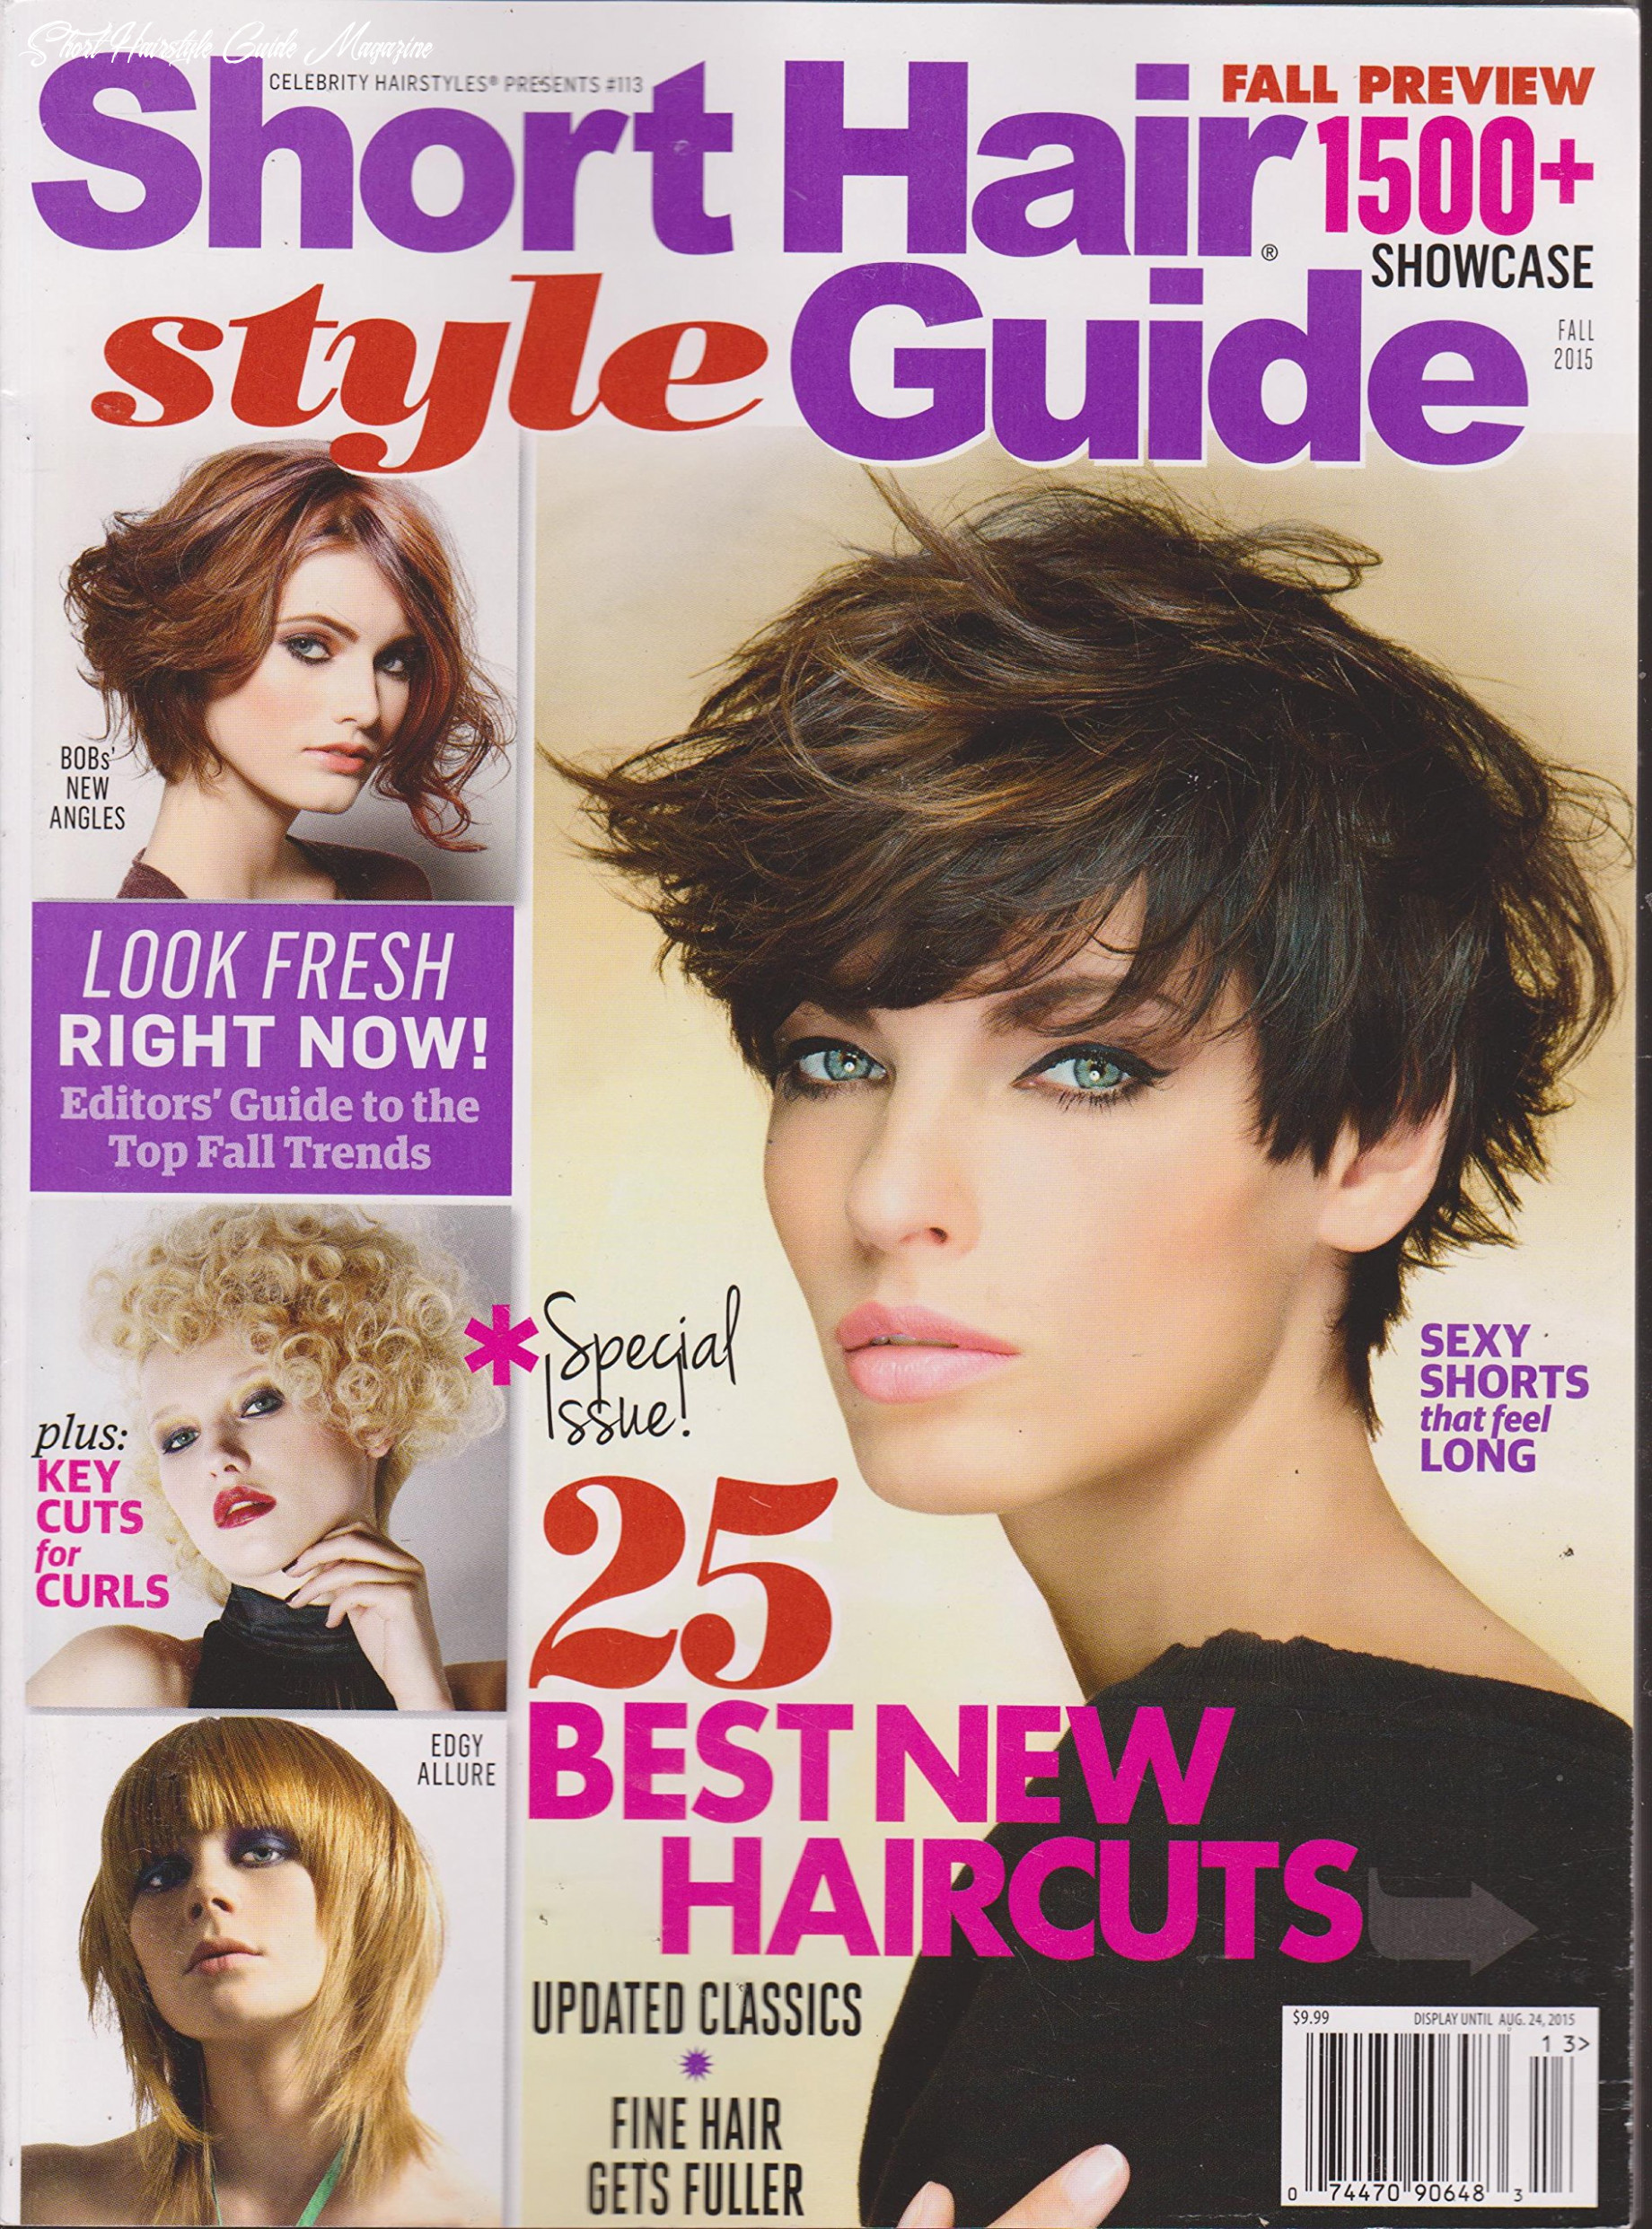 Celebrity hairstyles presents #8 short hair style guide magazine